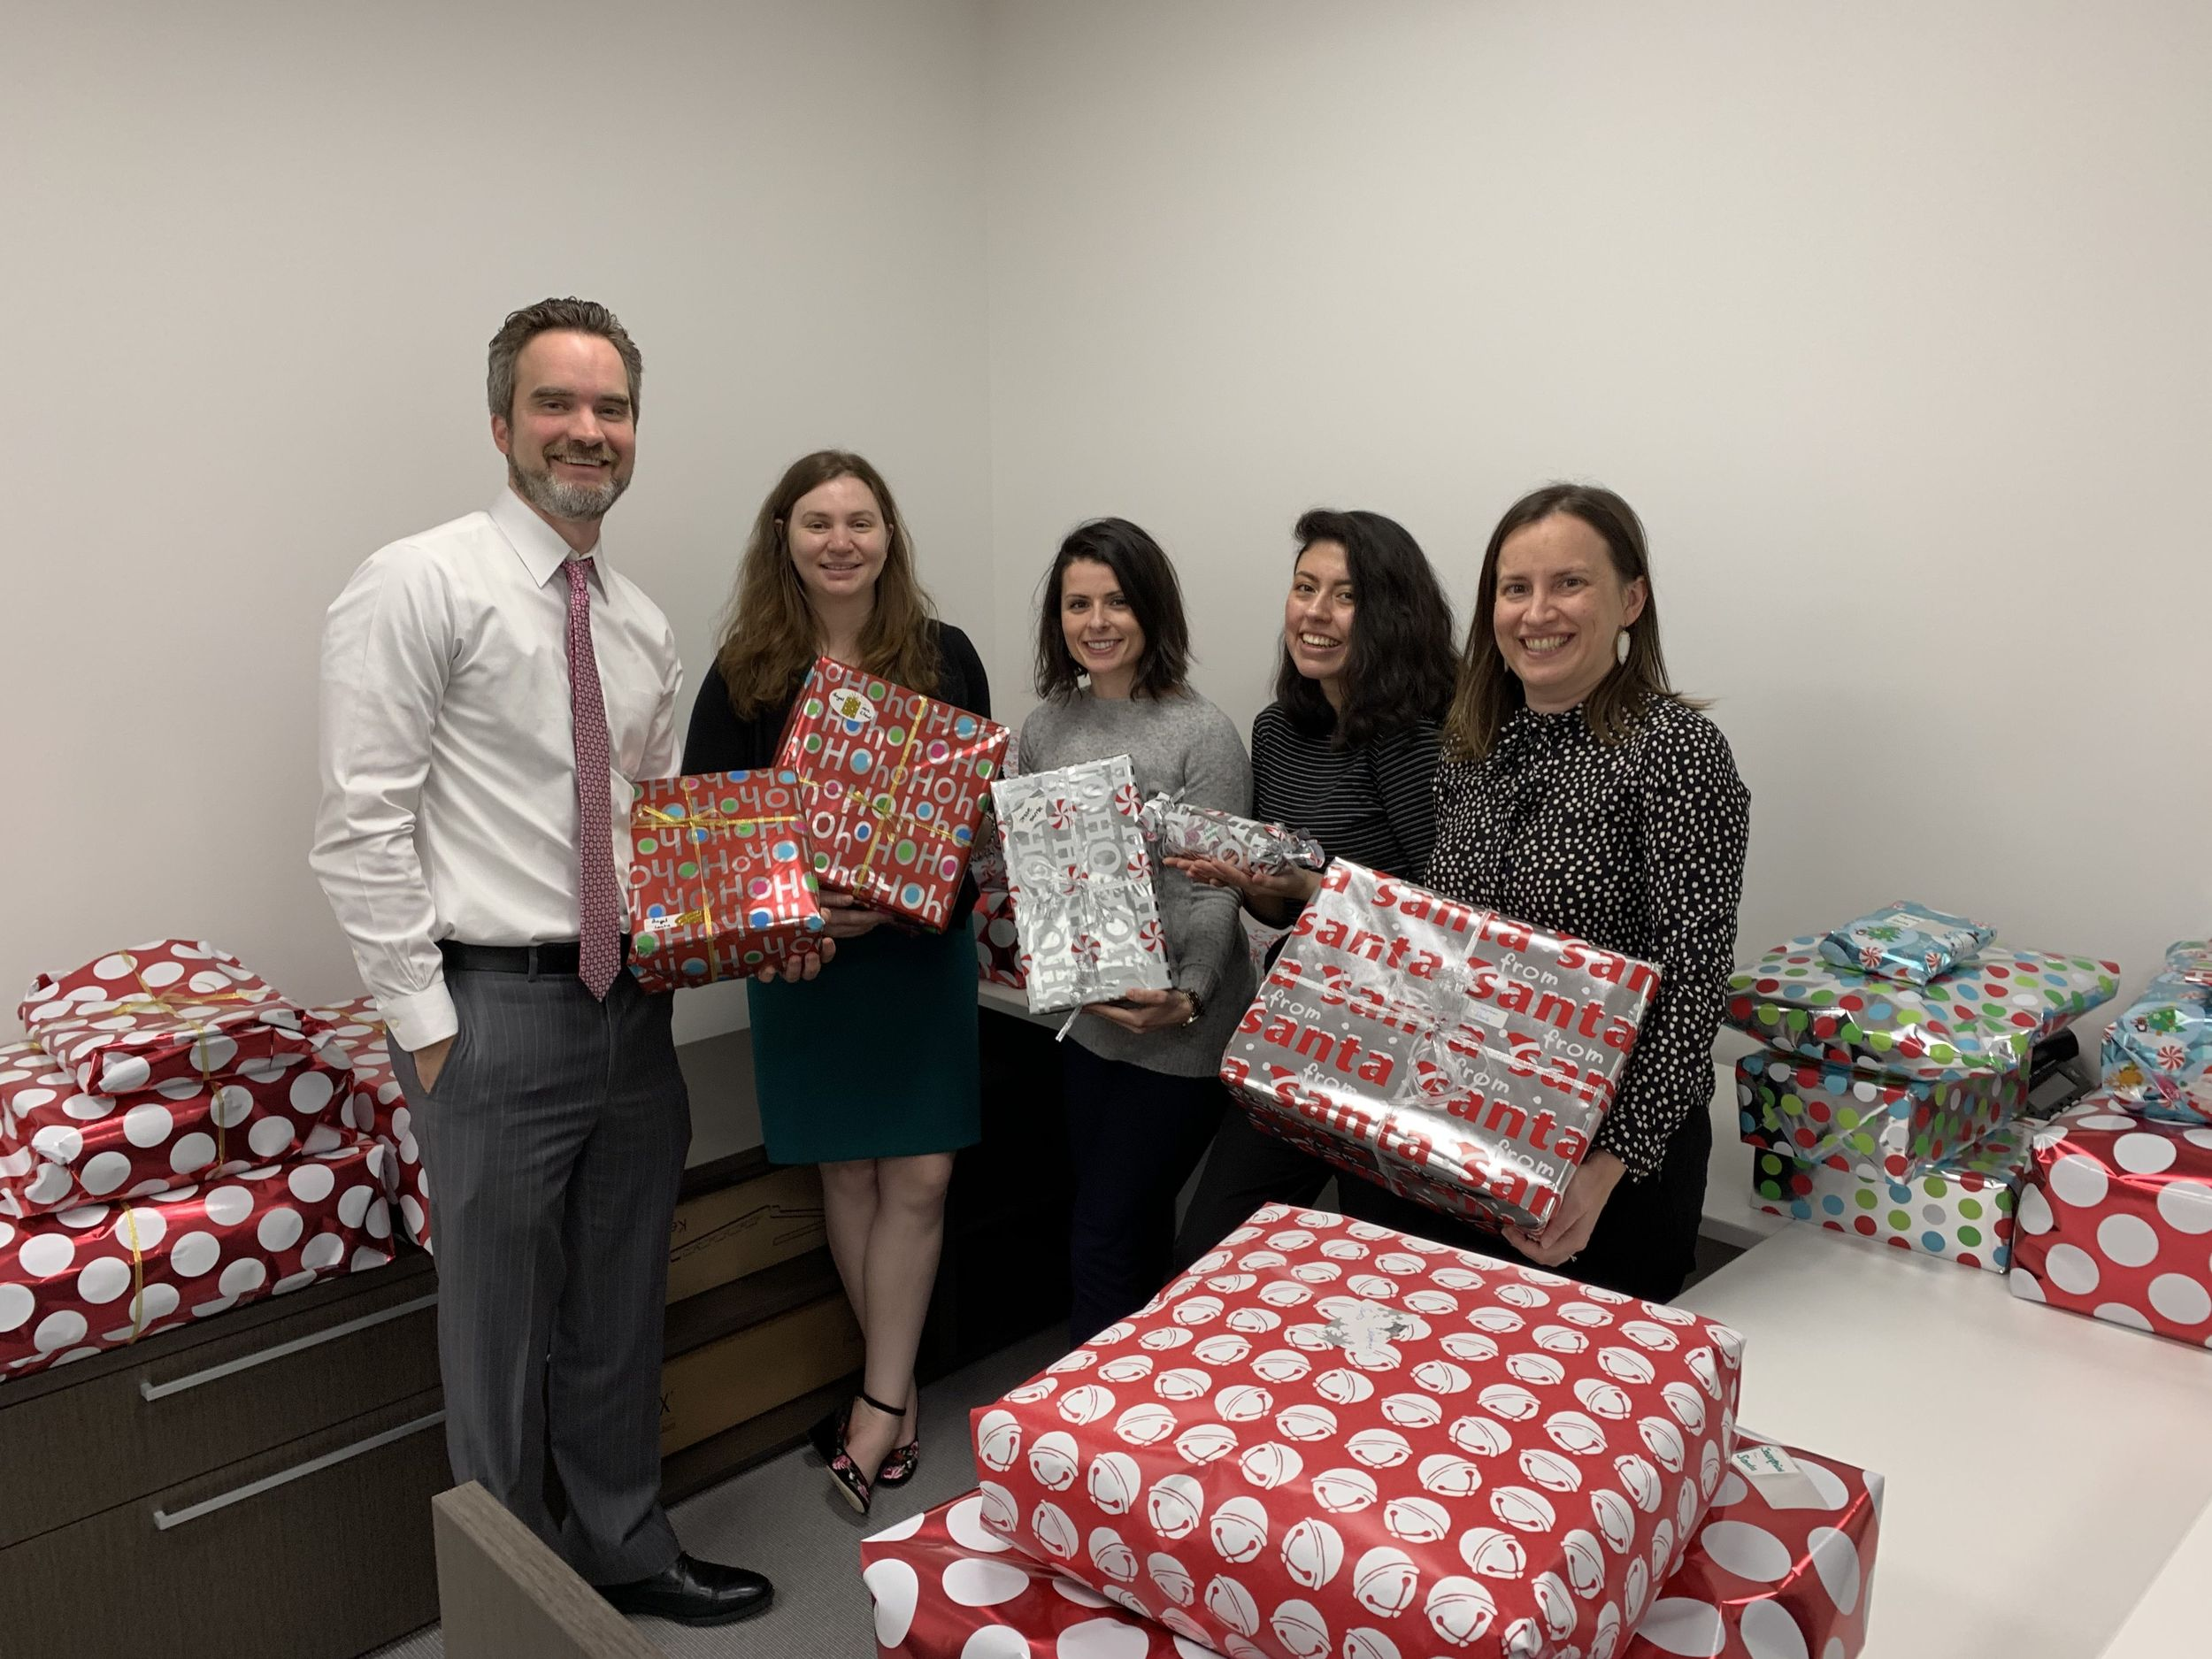 McFarland PLLC attorneys show the gifts they will give.